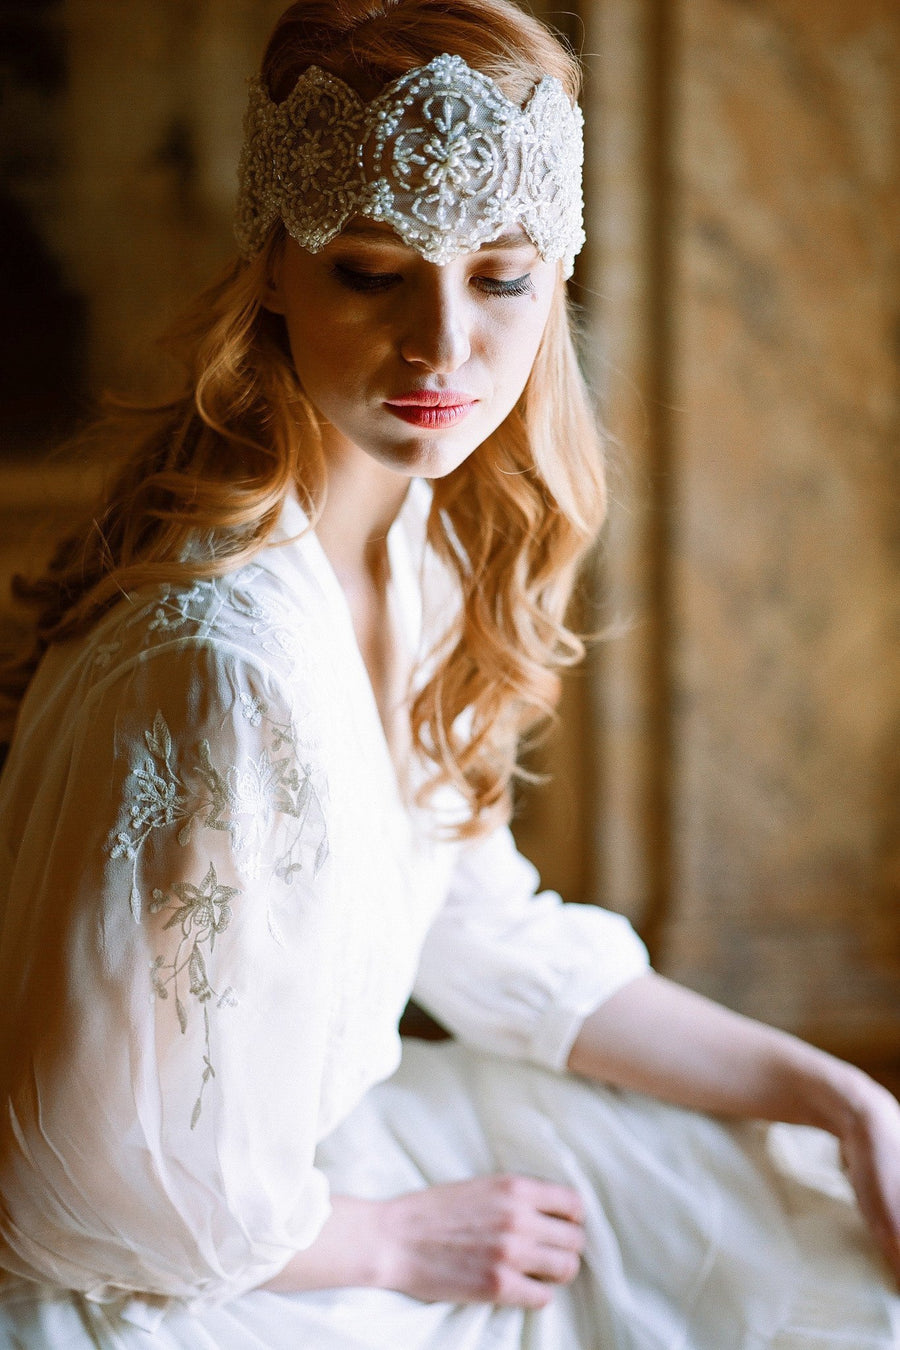 Beaded Medallion Bandeau Headpiece in Ivory & Gold - Style #217